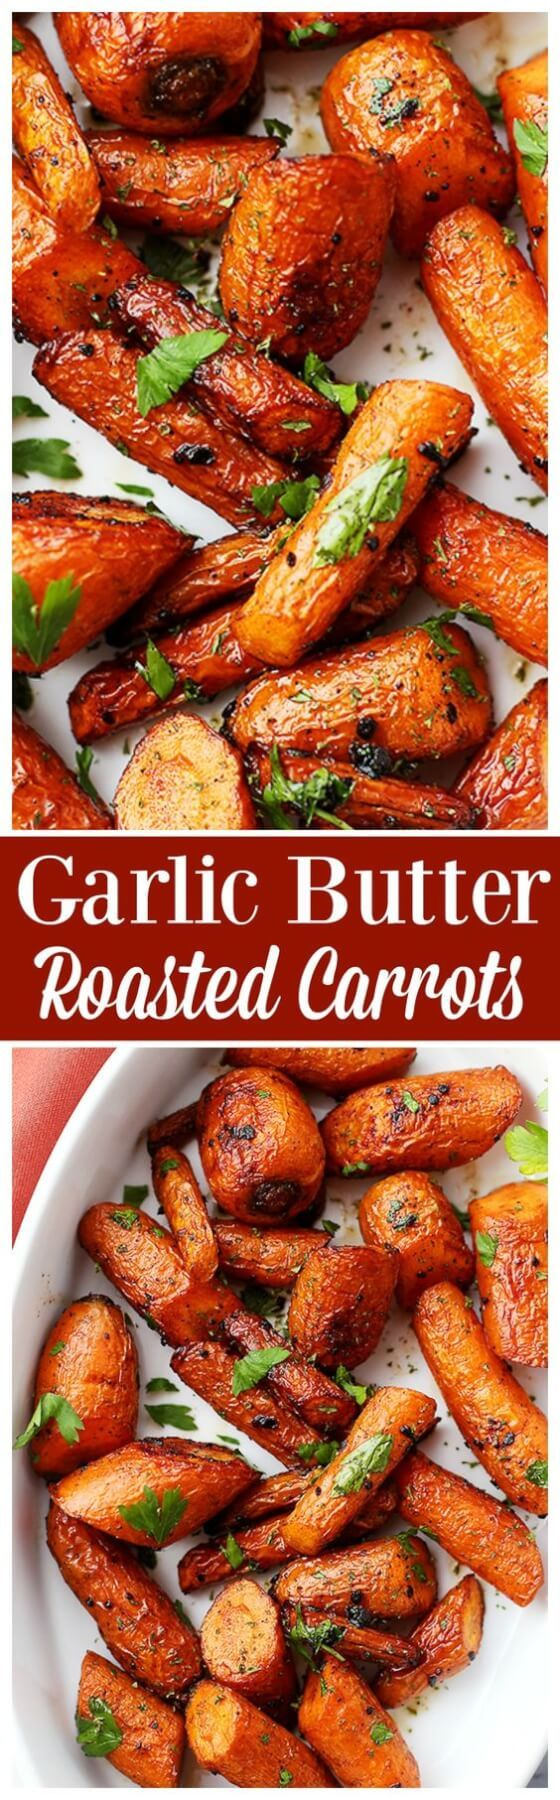 Best 25 easter recipes ideas on pinterest easter desserts garlic butter roasted carrots recipe plus 24 more of the most pinned easter recipes forumfinder Choice Image